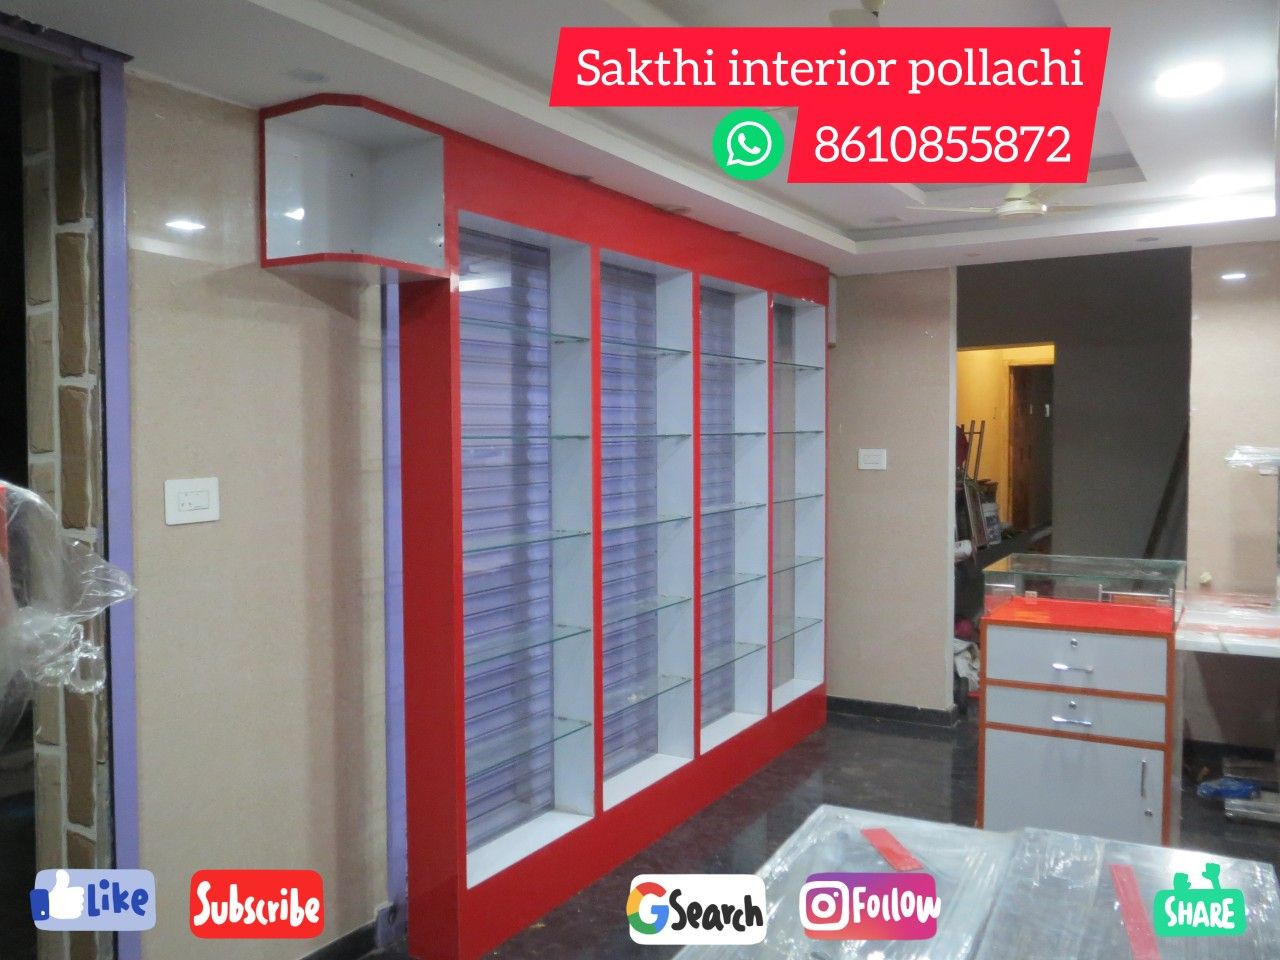 Bakery Design Interior By Pollachi Carpenter Sakthi Inte On Wardrobes